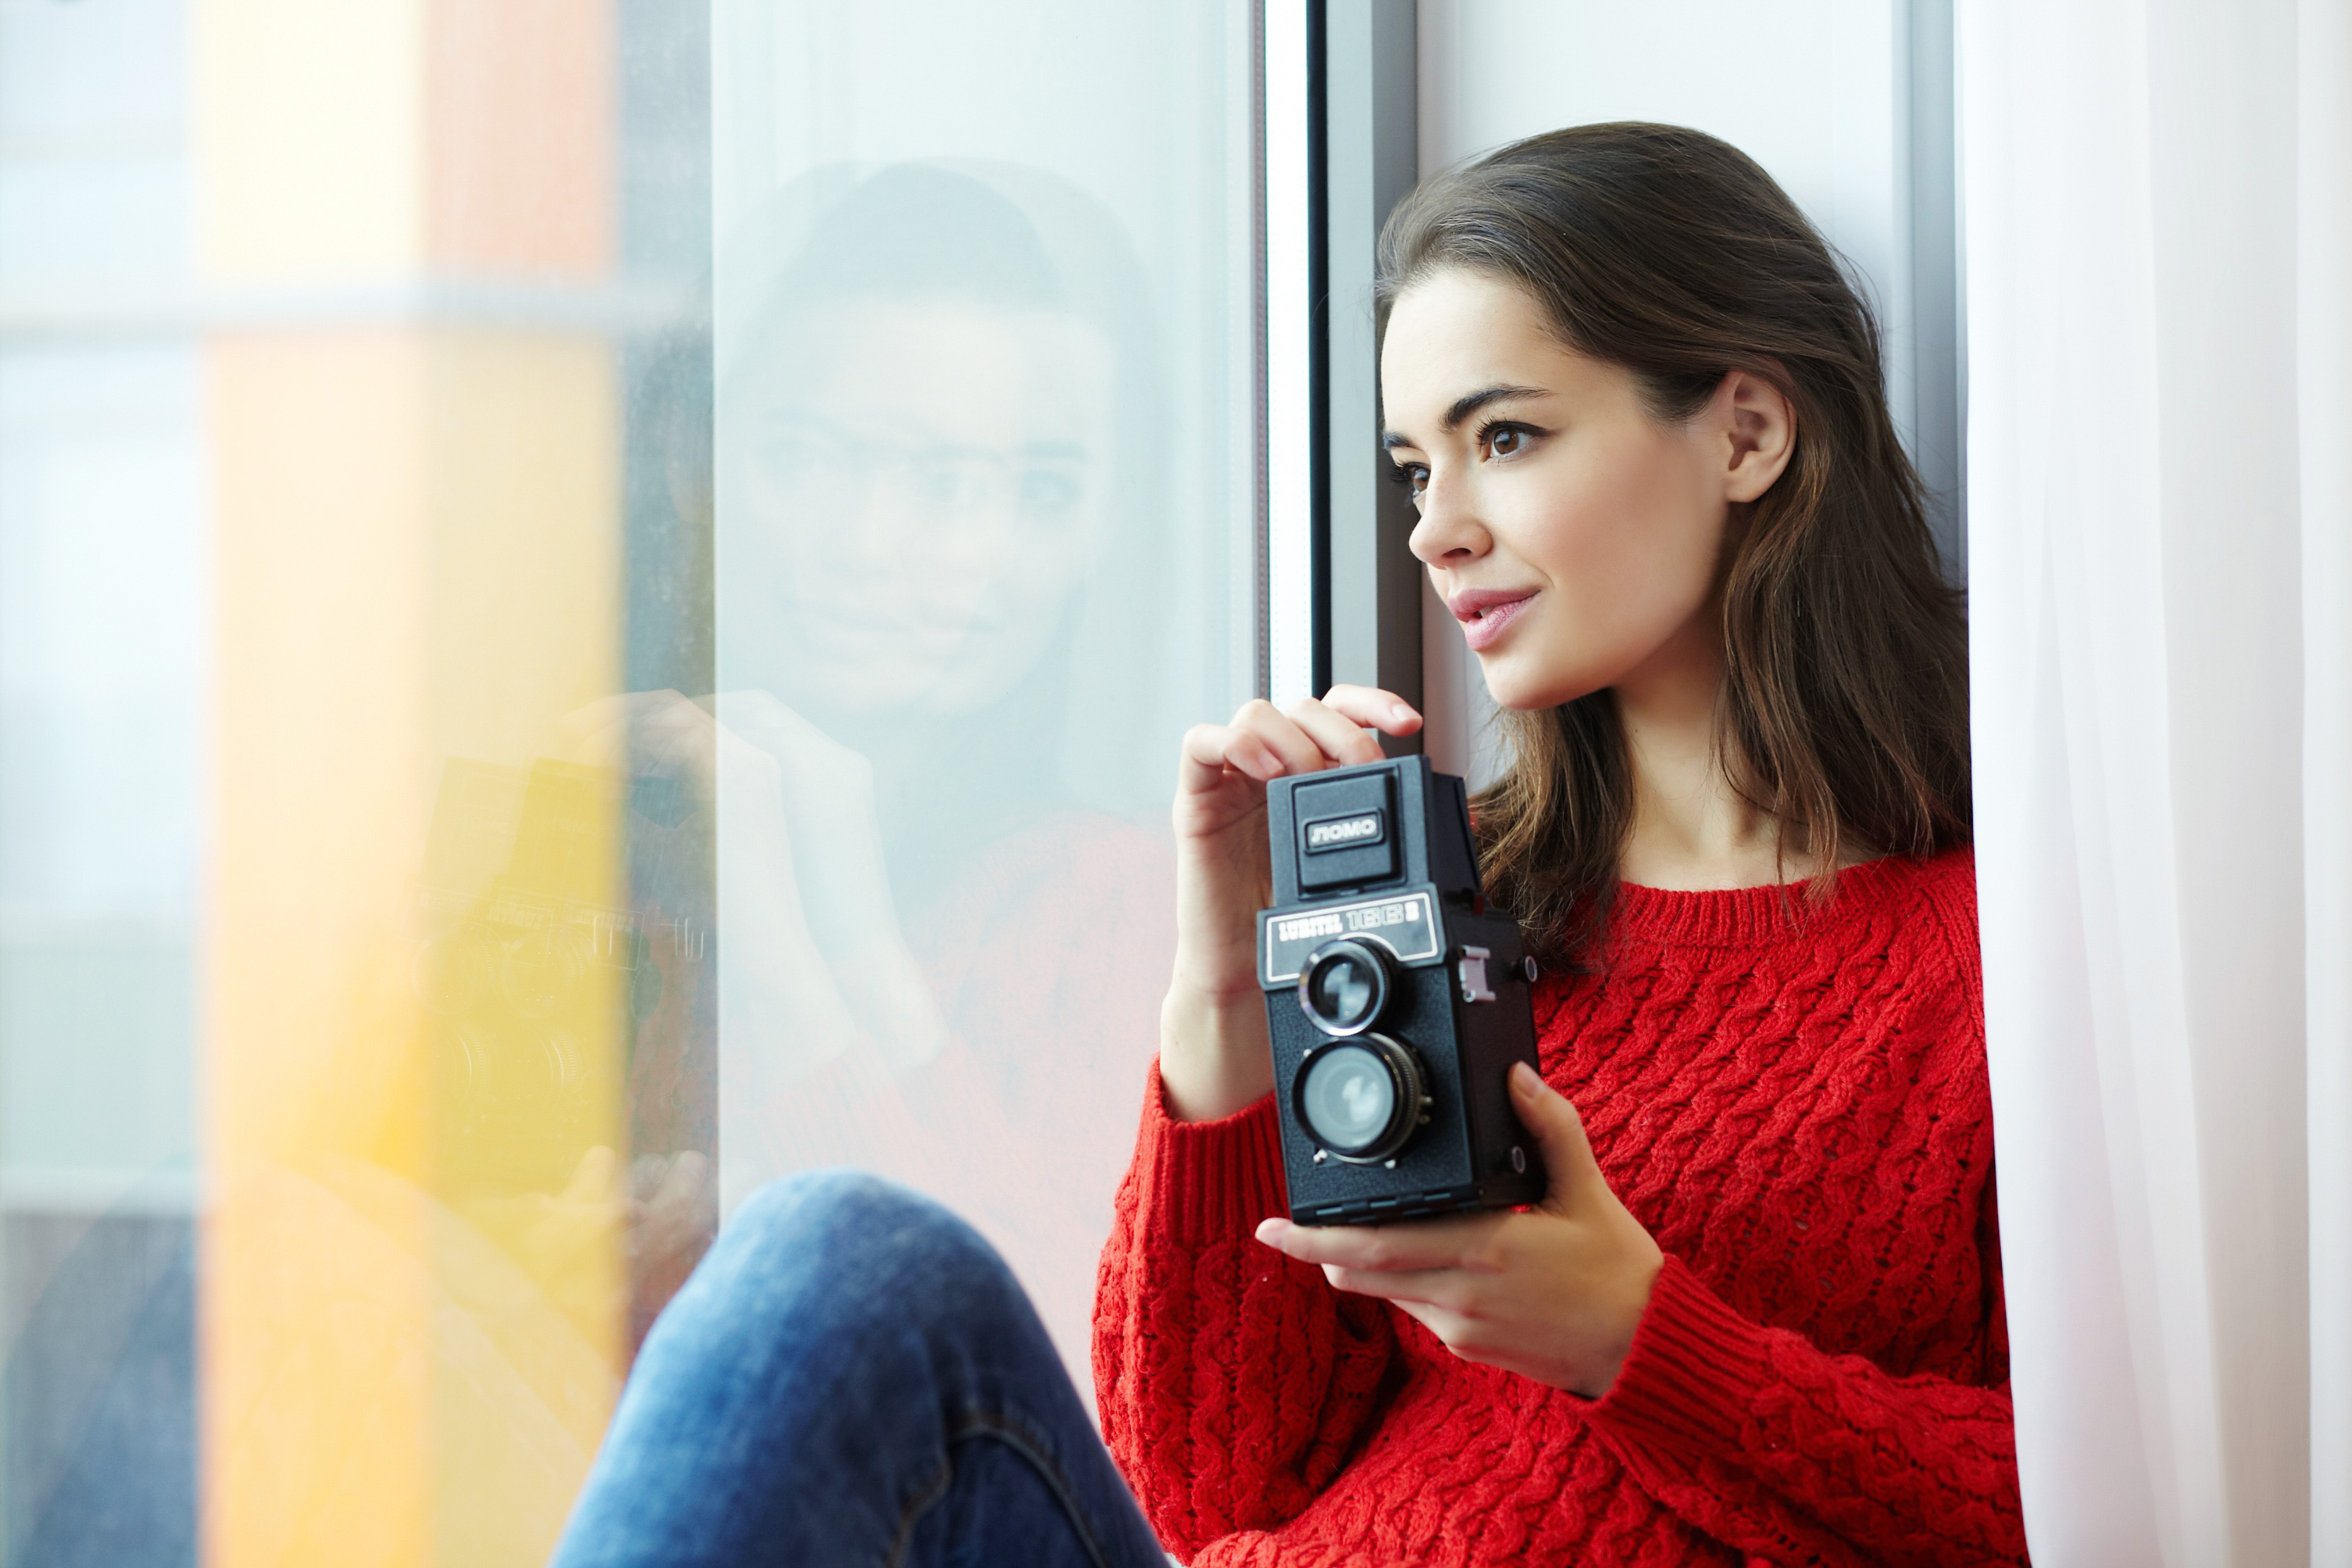 Woman Wearing Red Knitted Shirt Holding Instant Camera